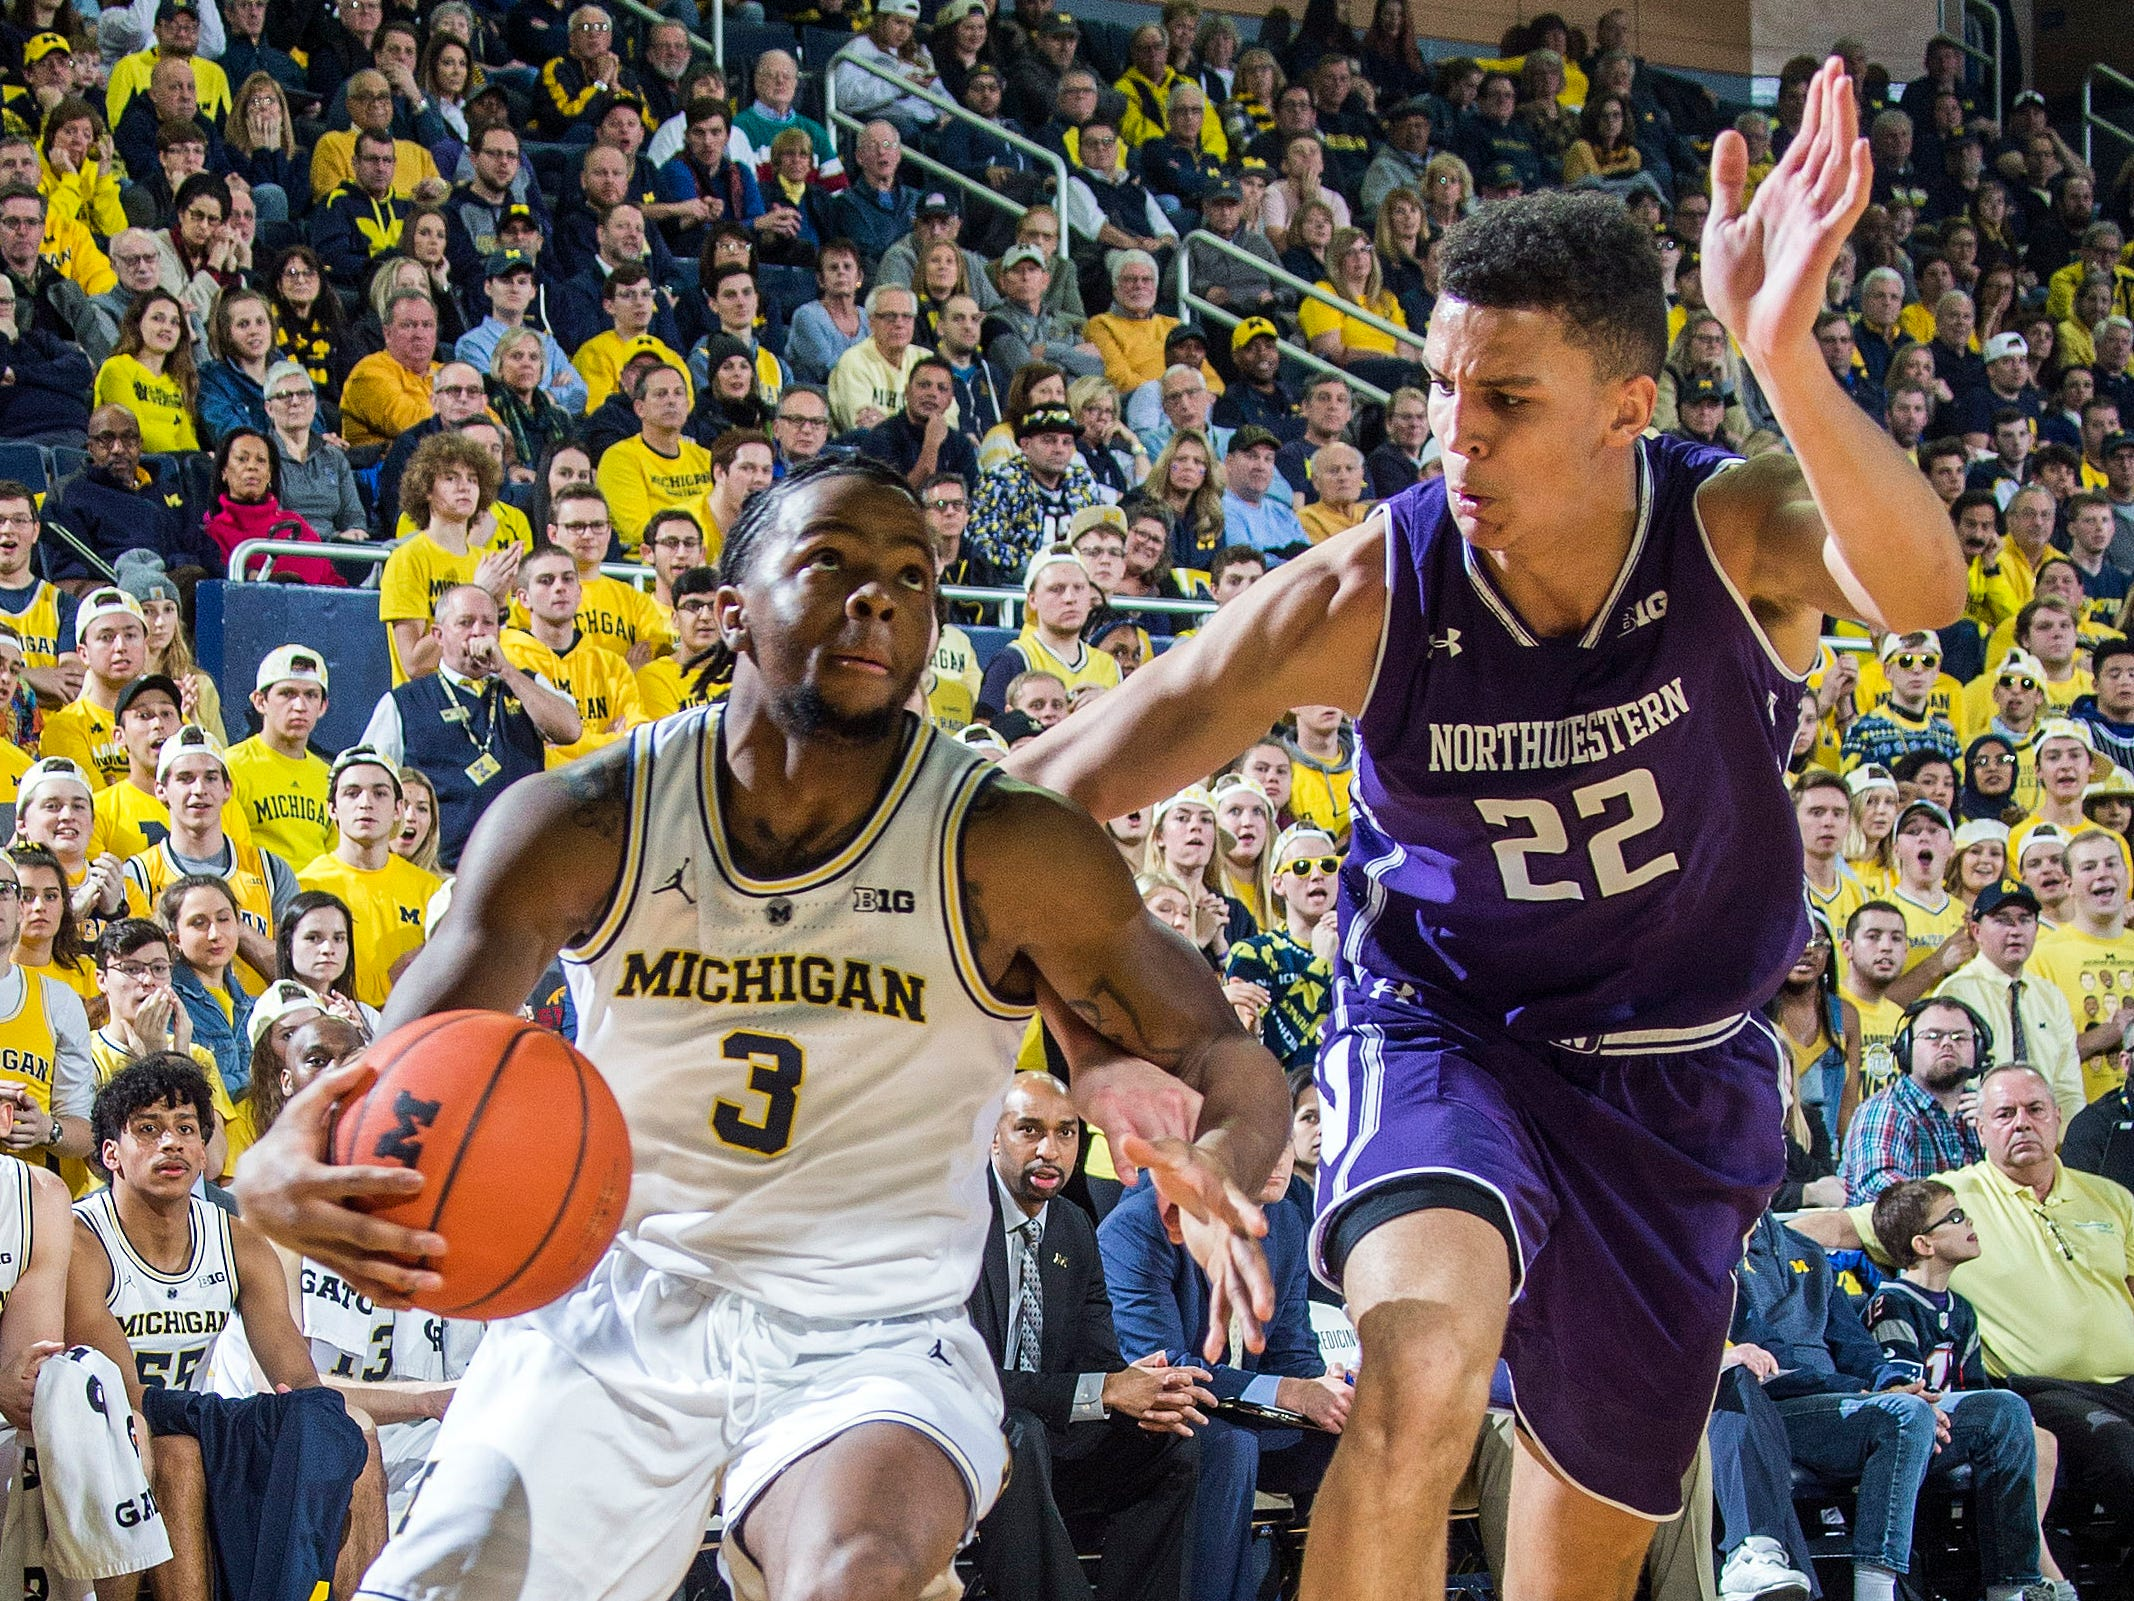 Michigan guard Zavier Simpson (3) drives toward the basket, defended by Northwestern forward Pete Nance (22) in the second half.